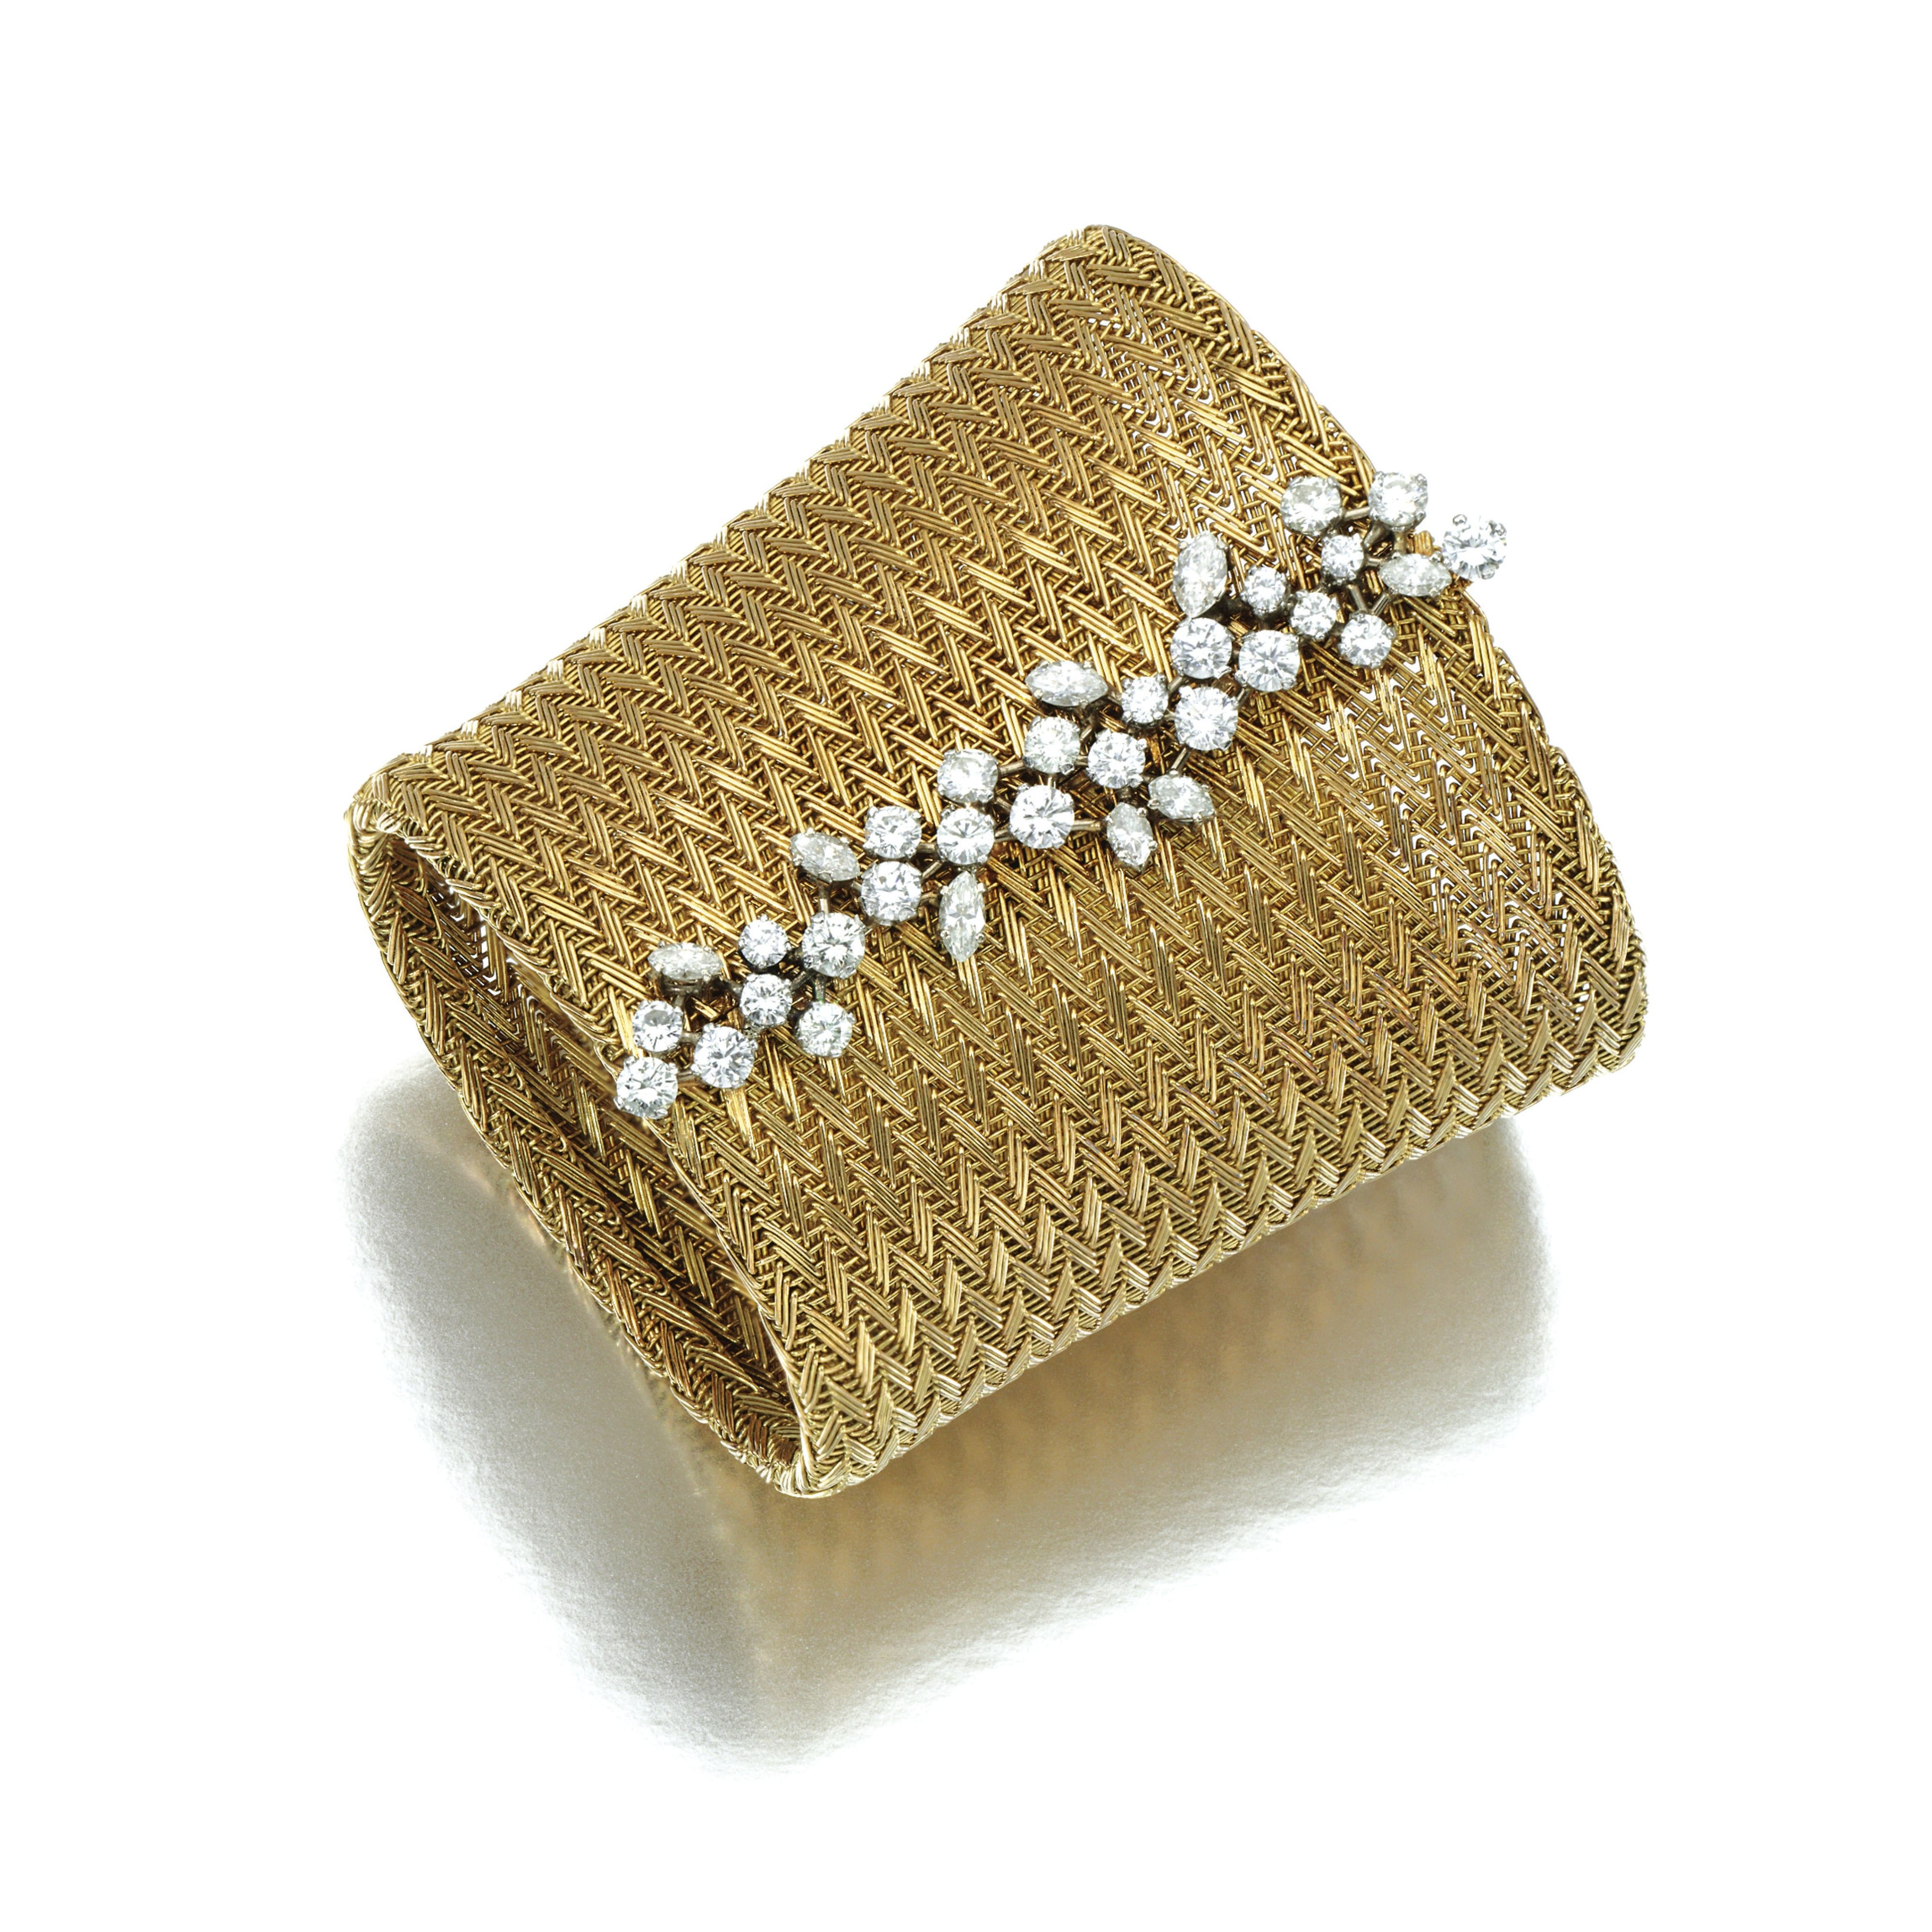 Diamond bracelet designed as a wide tapered cuff of woven basket